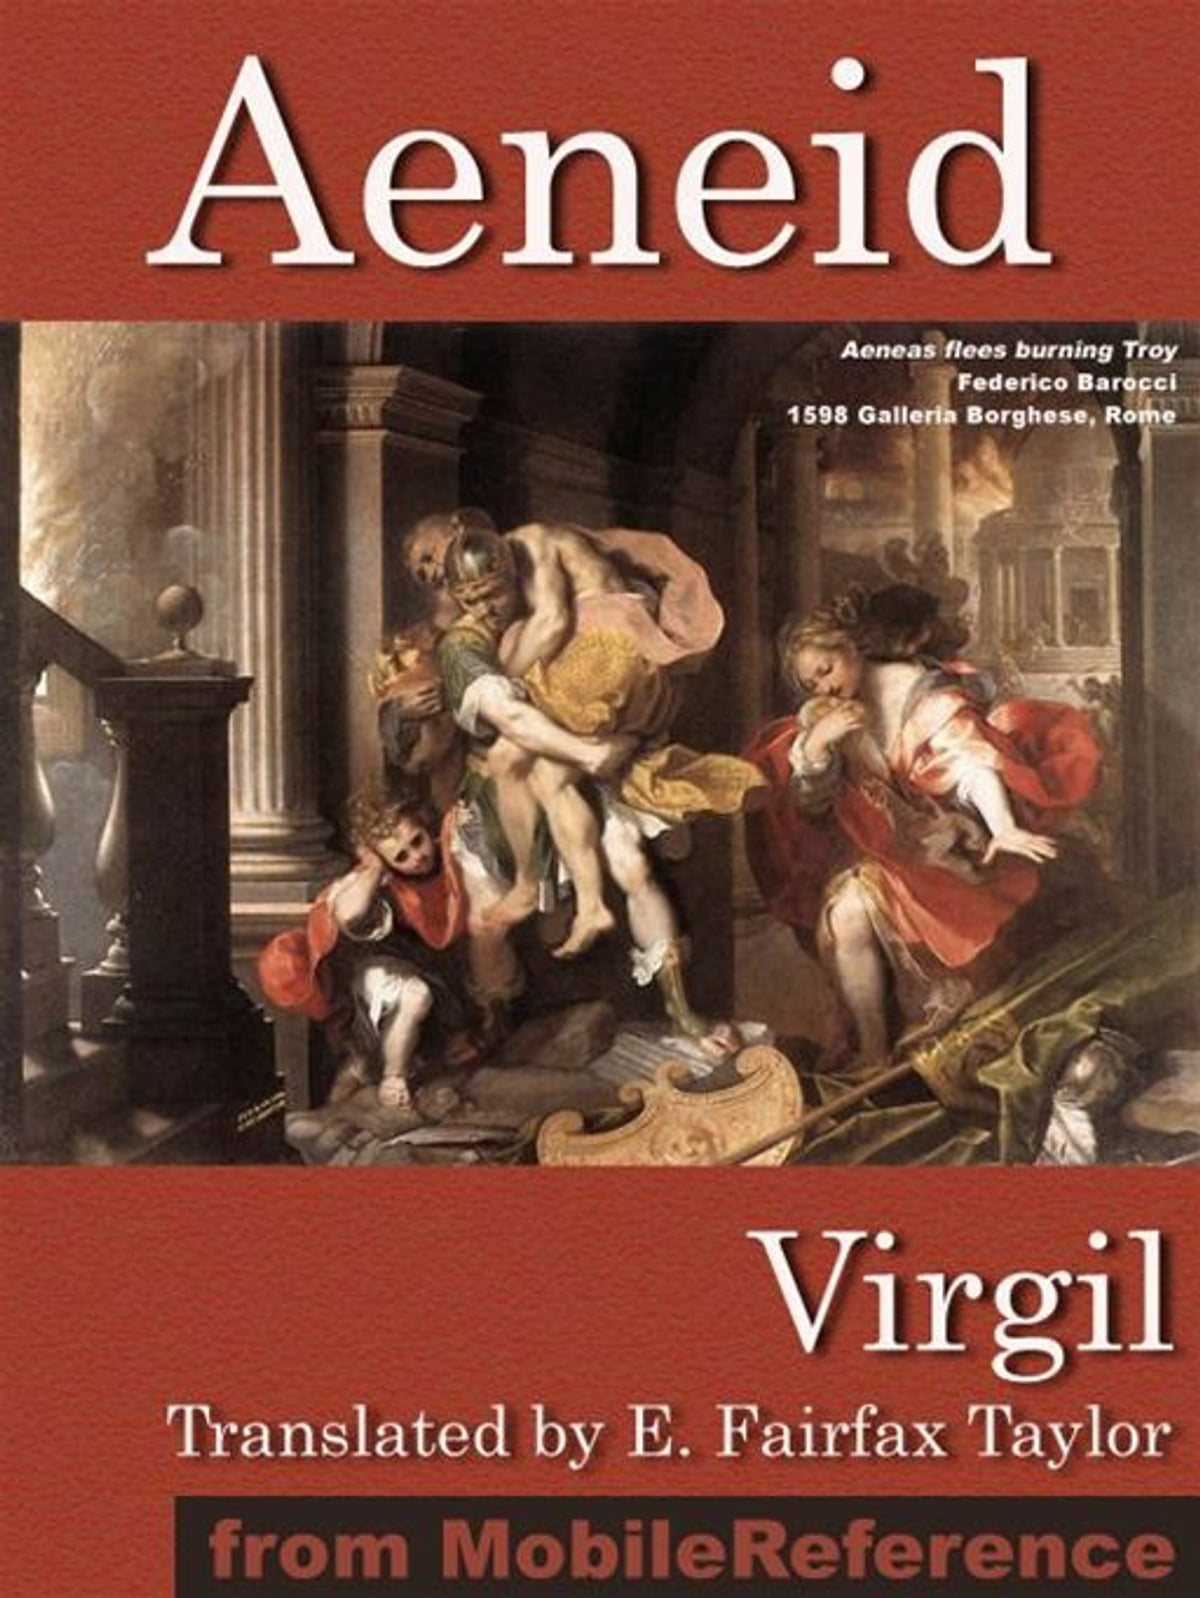 the aeneid The aeneid is virgil's masterpiece a great price for an ancient classic publisher: wordsworth editions ltd anybody needs to read this, regardless if you like poetry or not very well written, this poem is a classic, the writing style here is very unique | ebay.